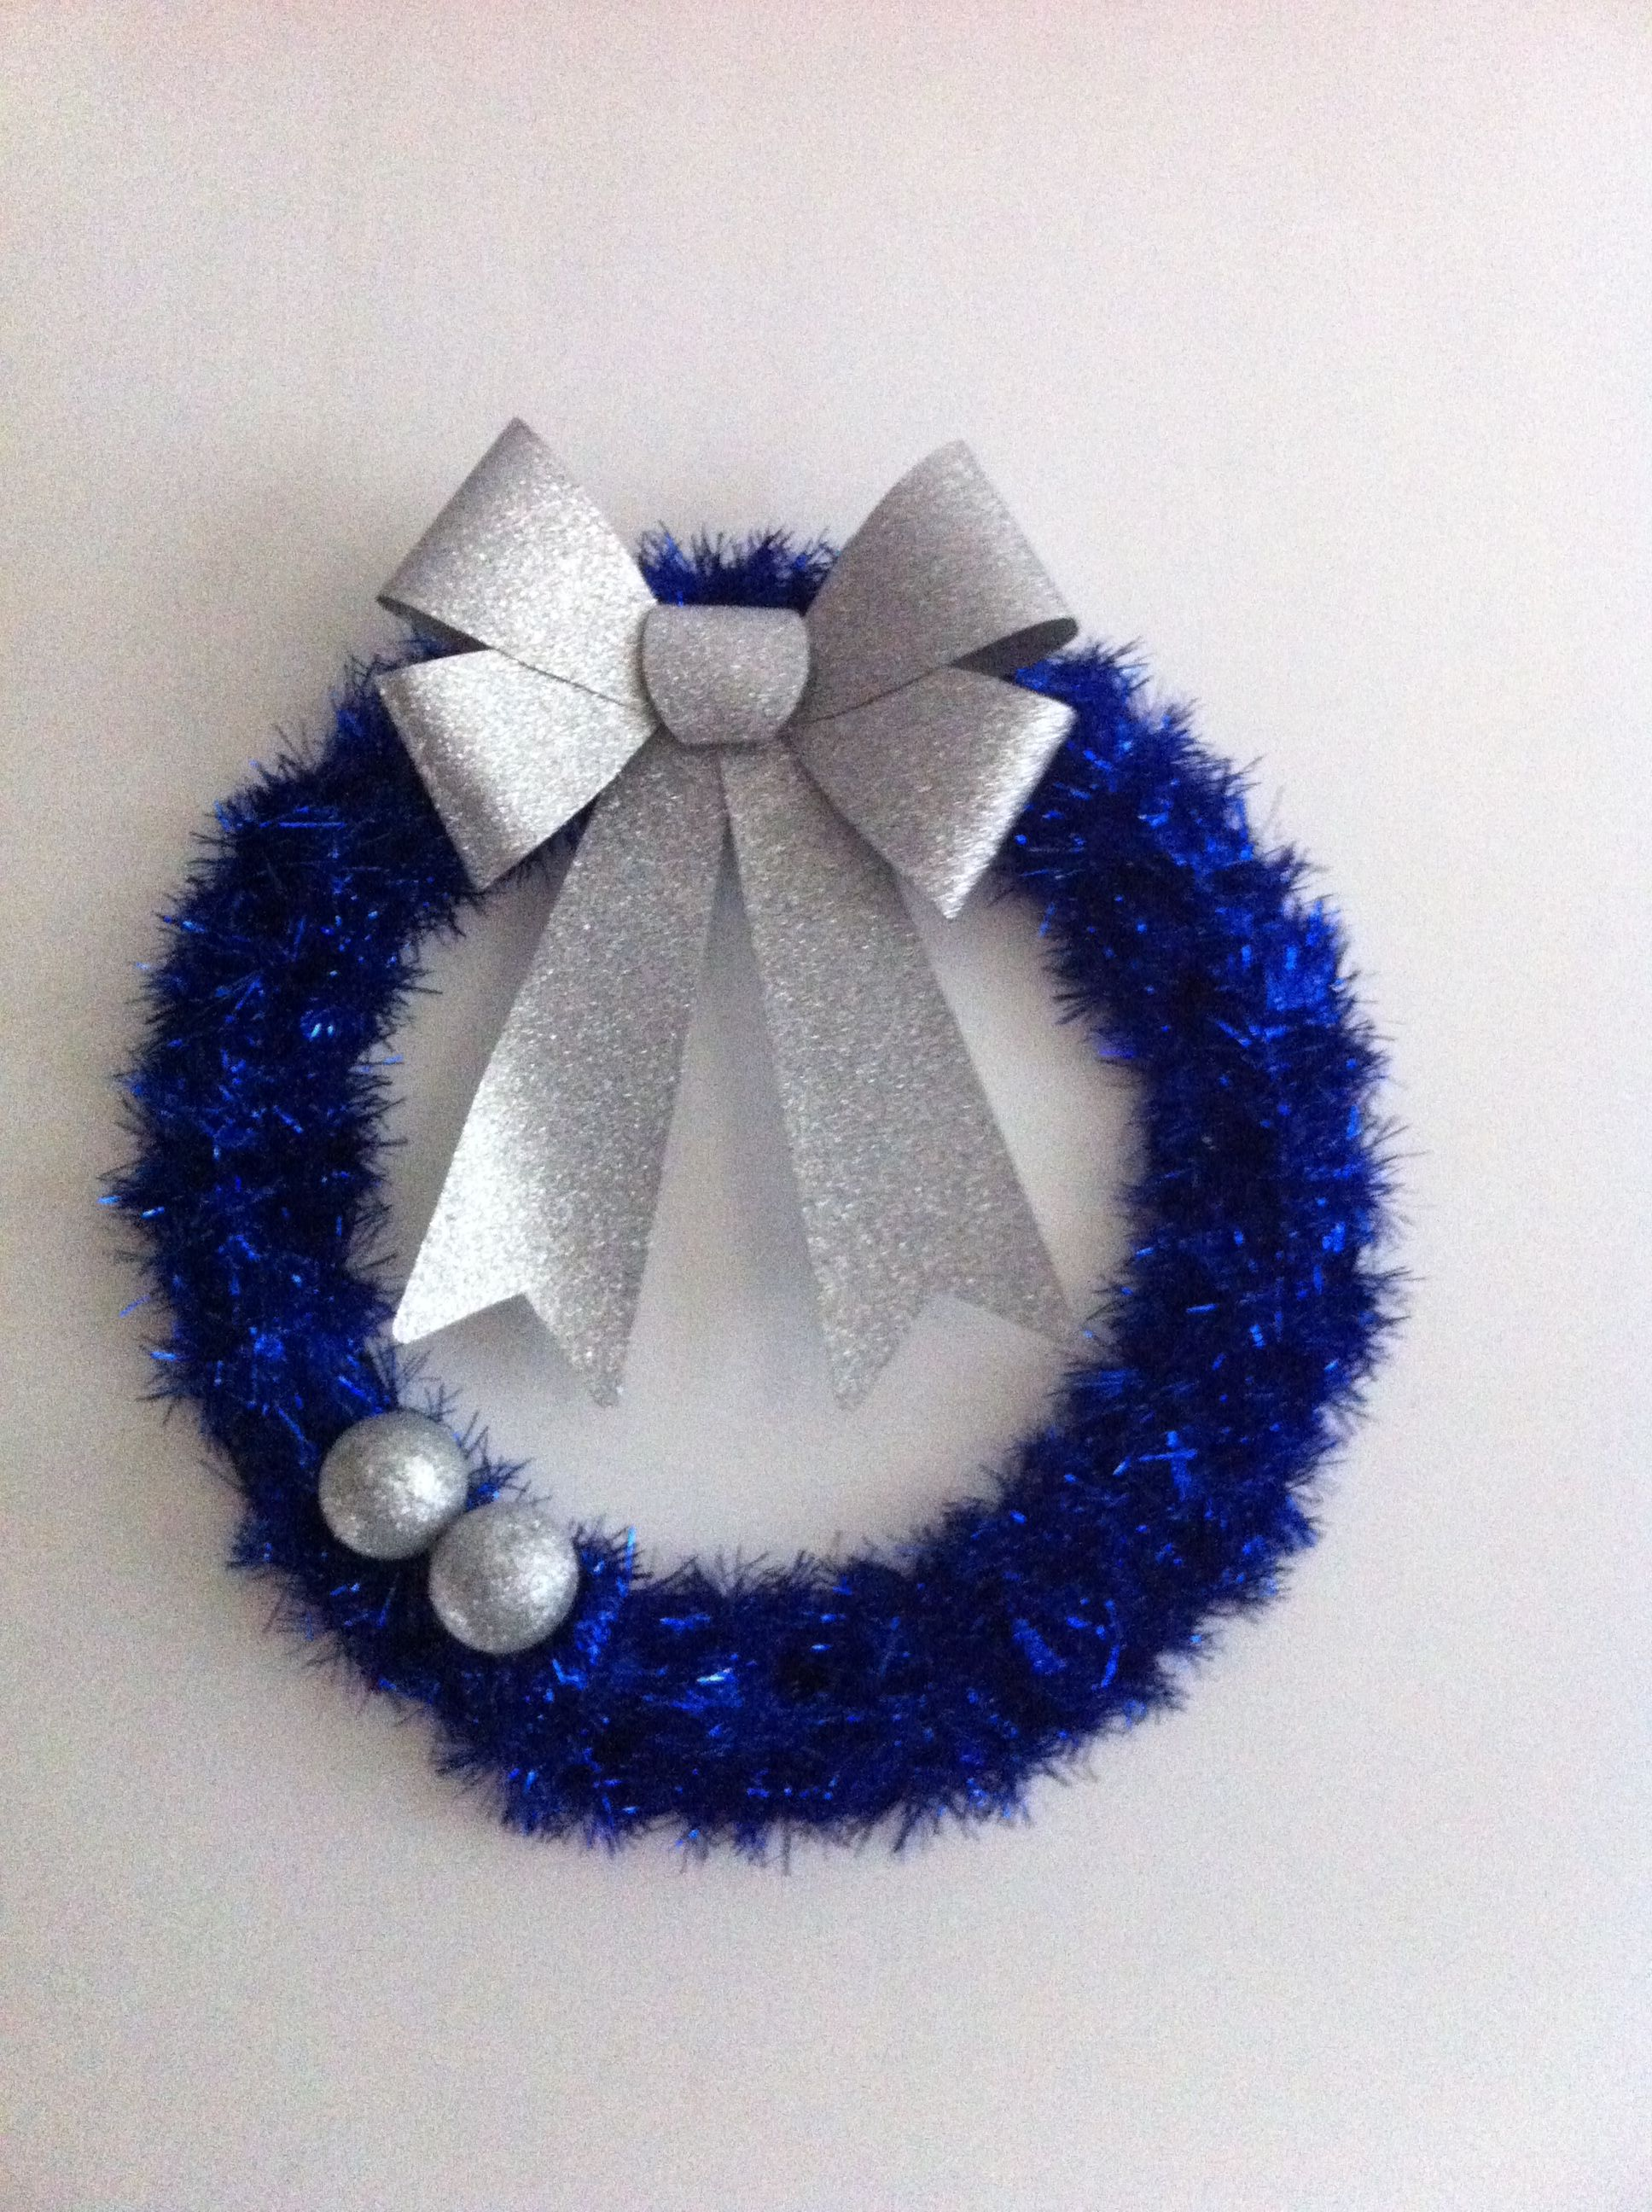 Tinsel wreath with a few ornaments. Leftover ornaments n